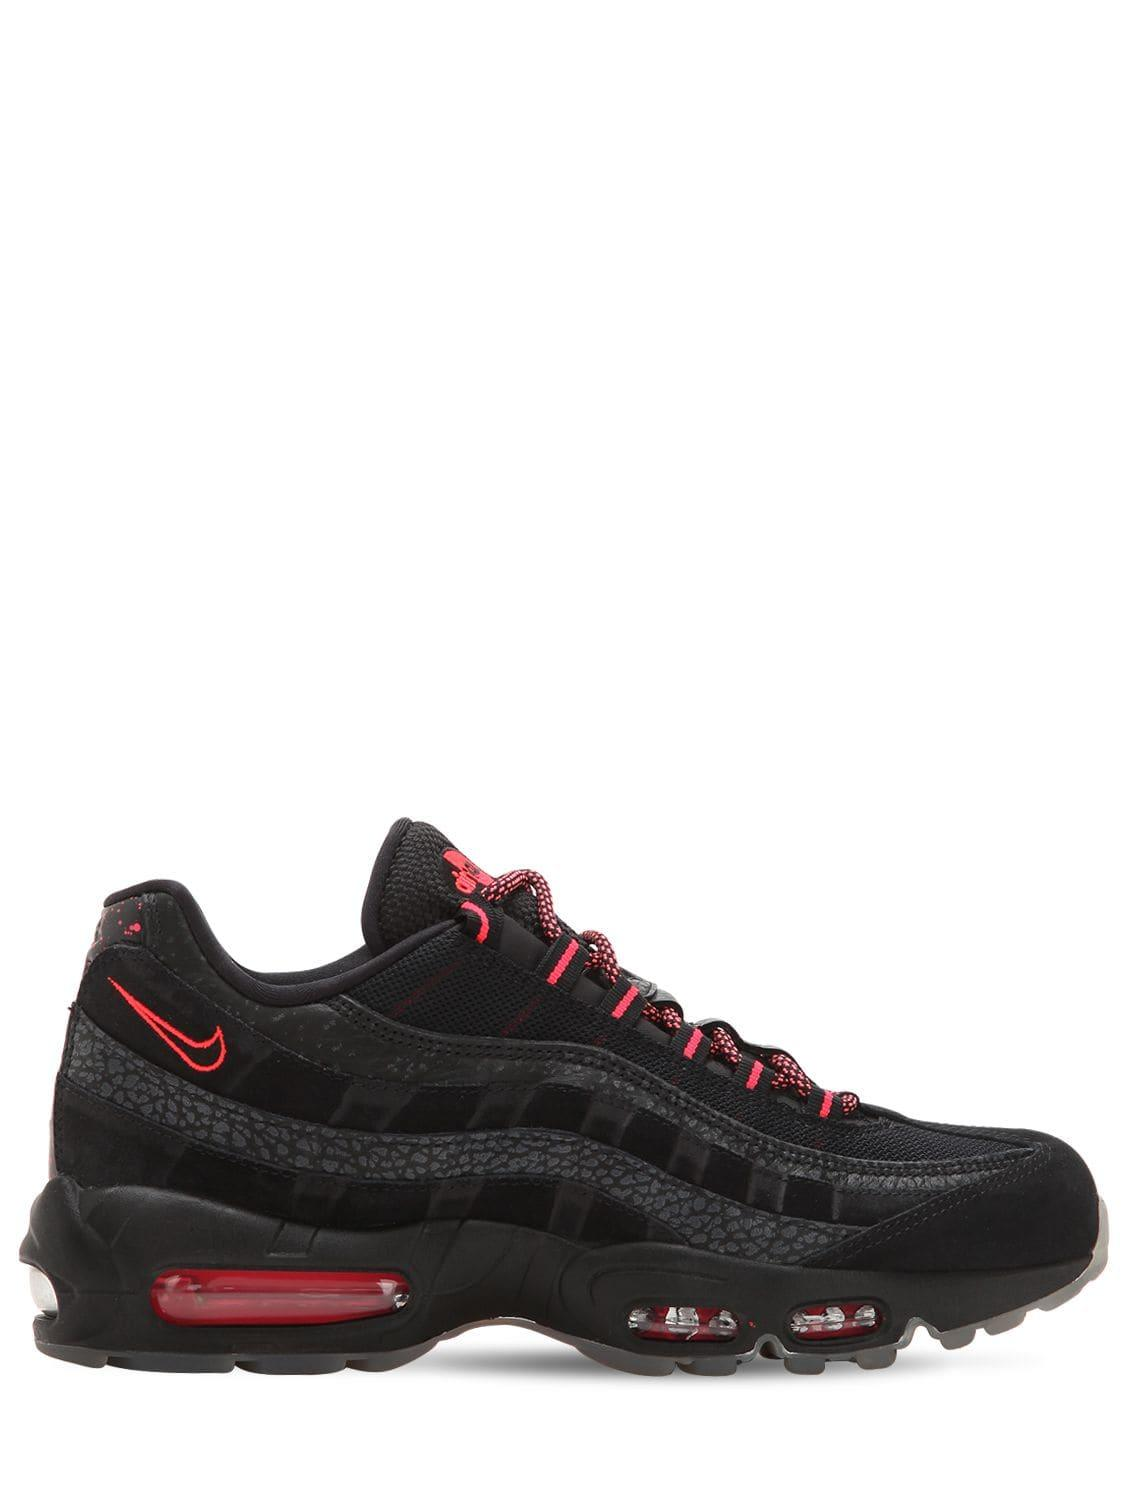 4327db1957b Lyst - Nike Air Max 95 We Sneakers in Black for Men